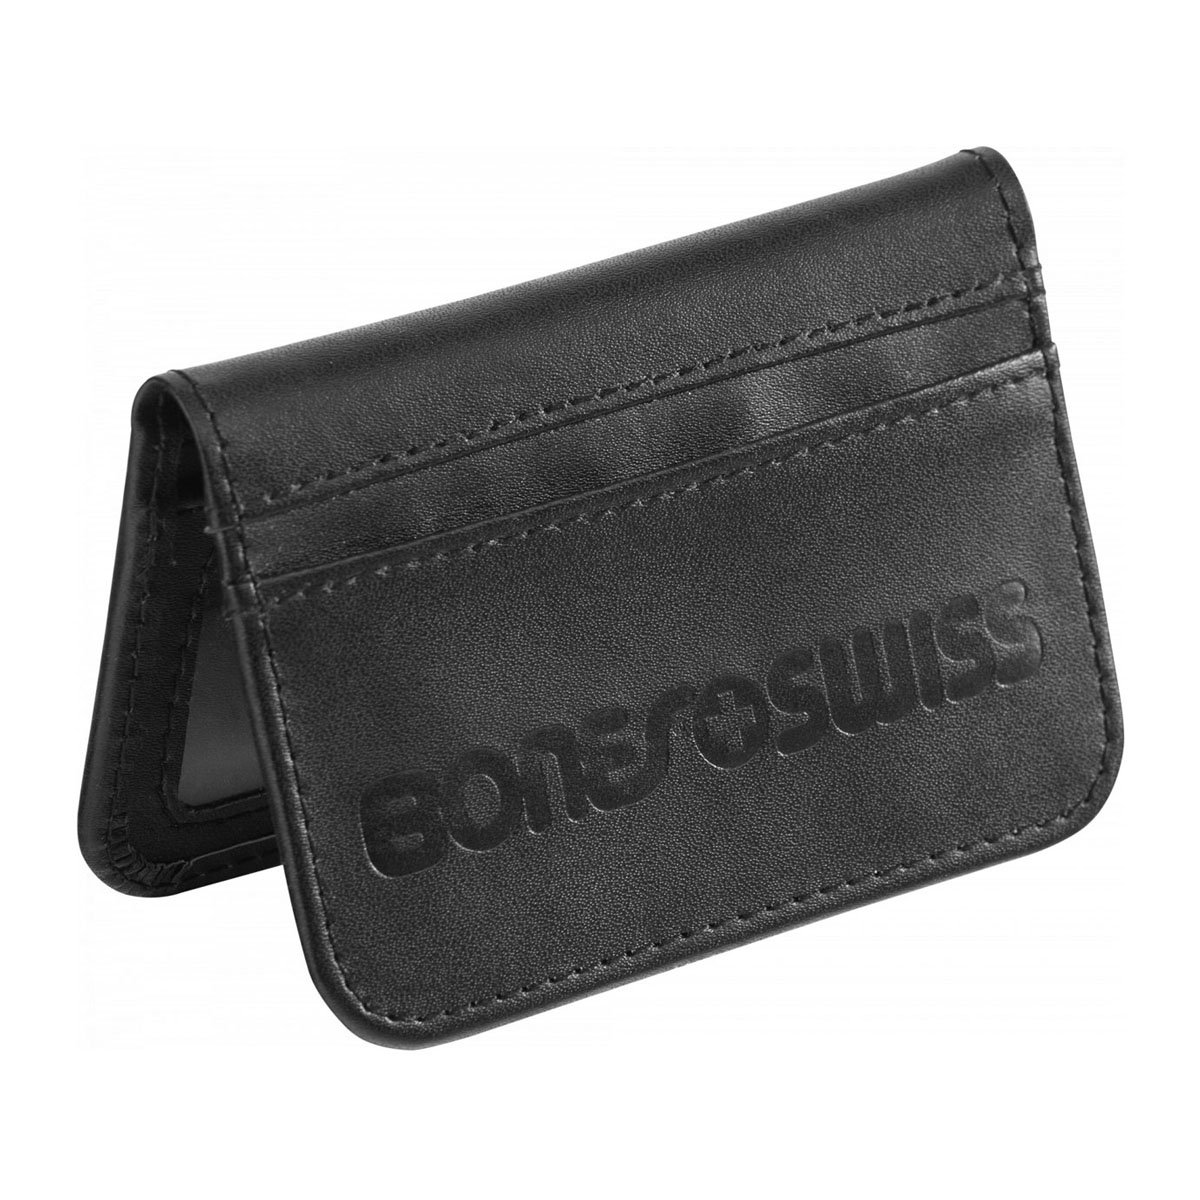 SWISS BOSS WALLET